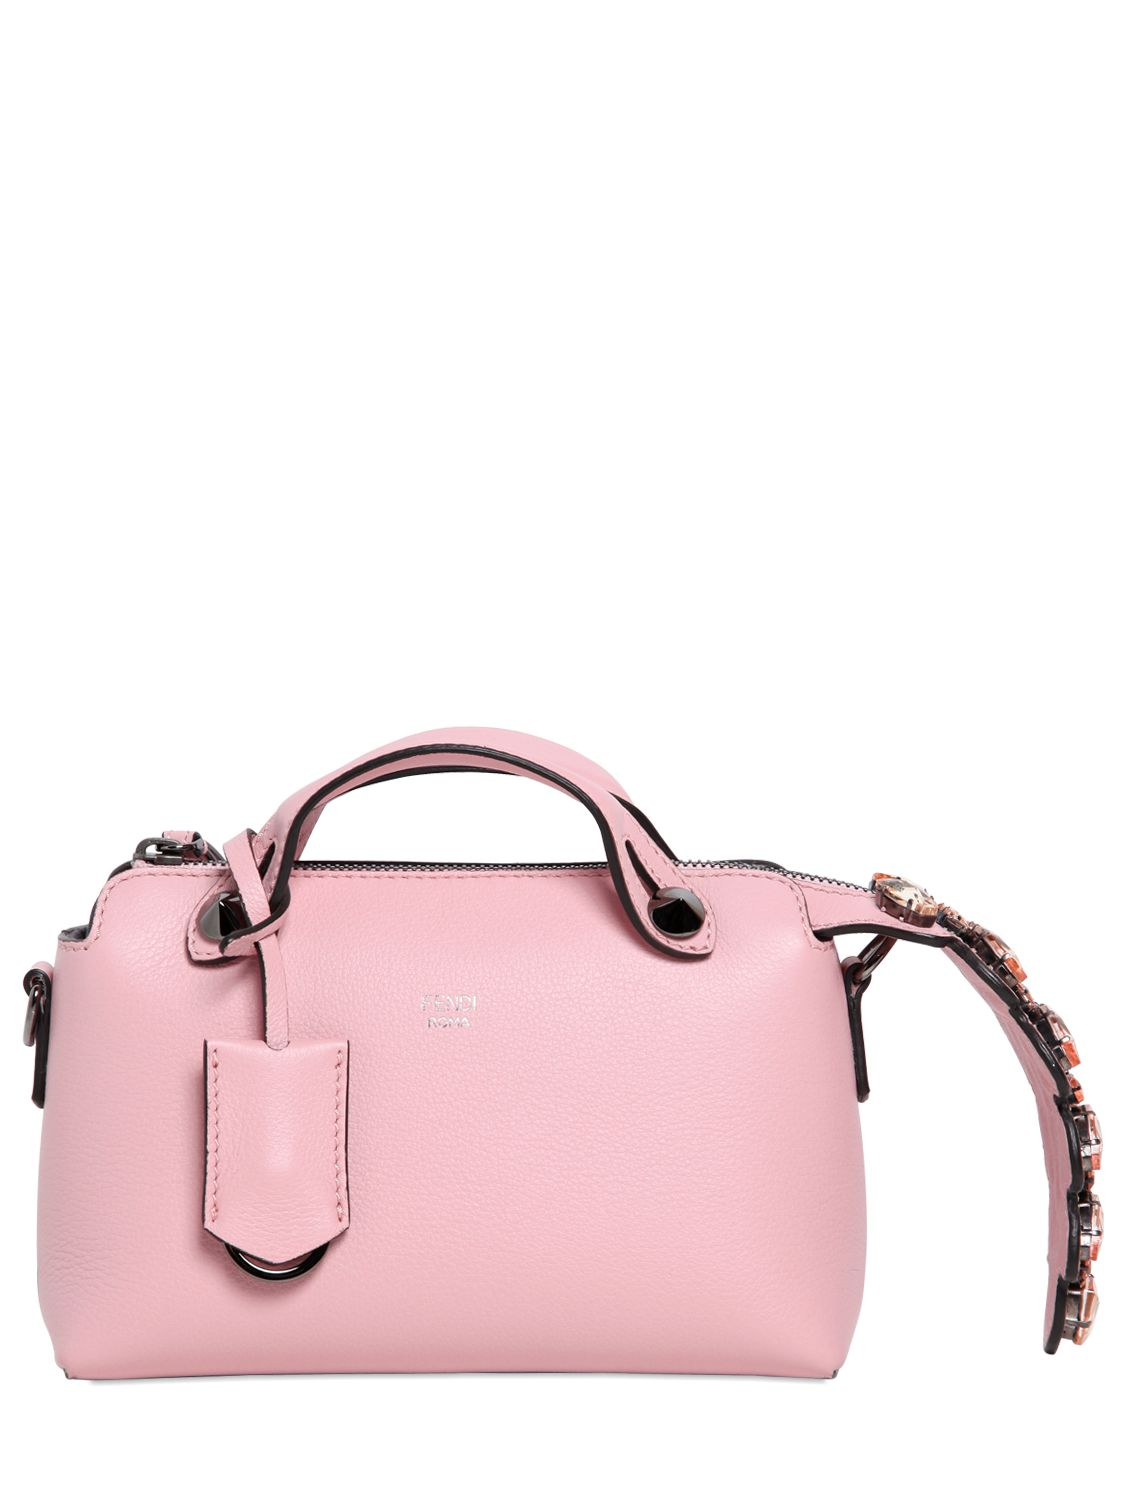 0ba97466fcad ... good lyst fendi mini by the way leather shoulder bag in pink 51b5b  d0bdd ...